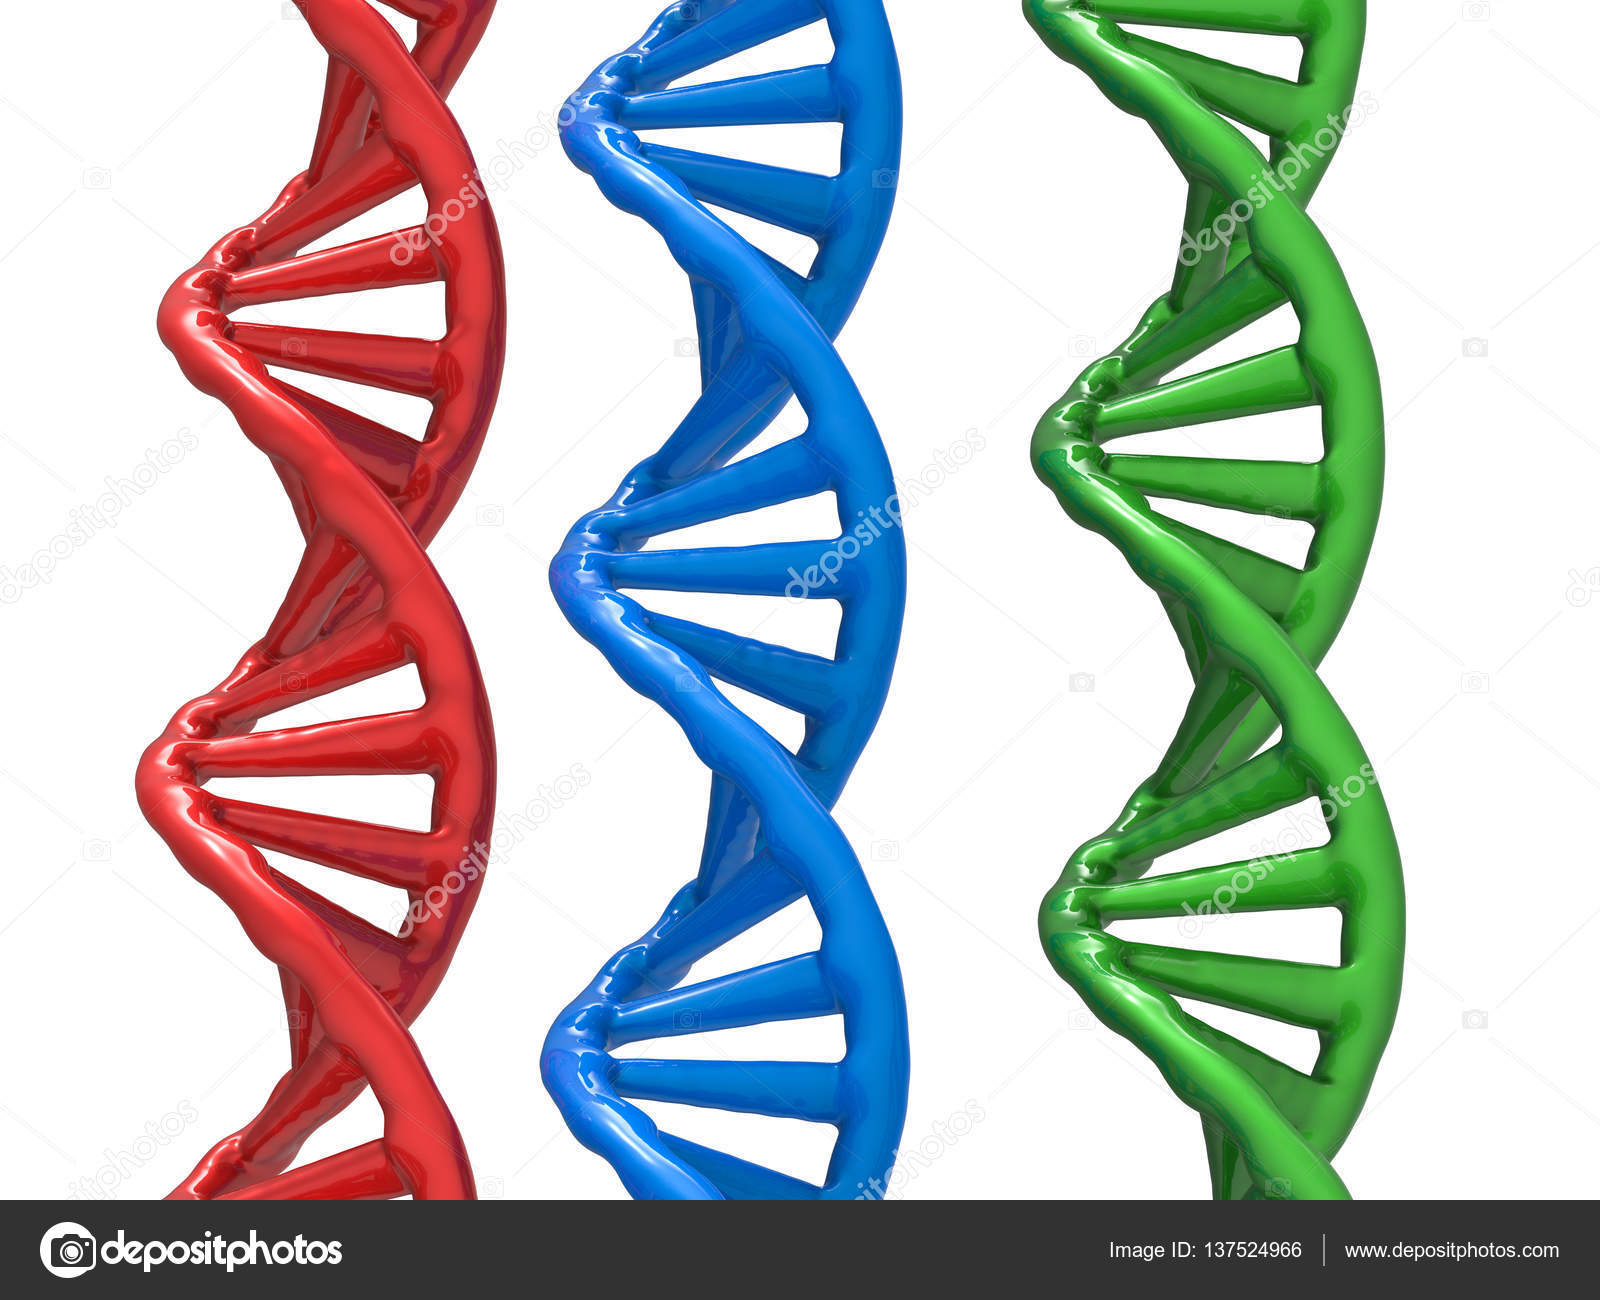 Dna structure or dna helix — Stock Photo © phonlamai #137524966